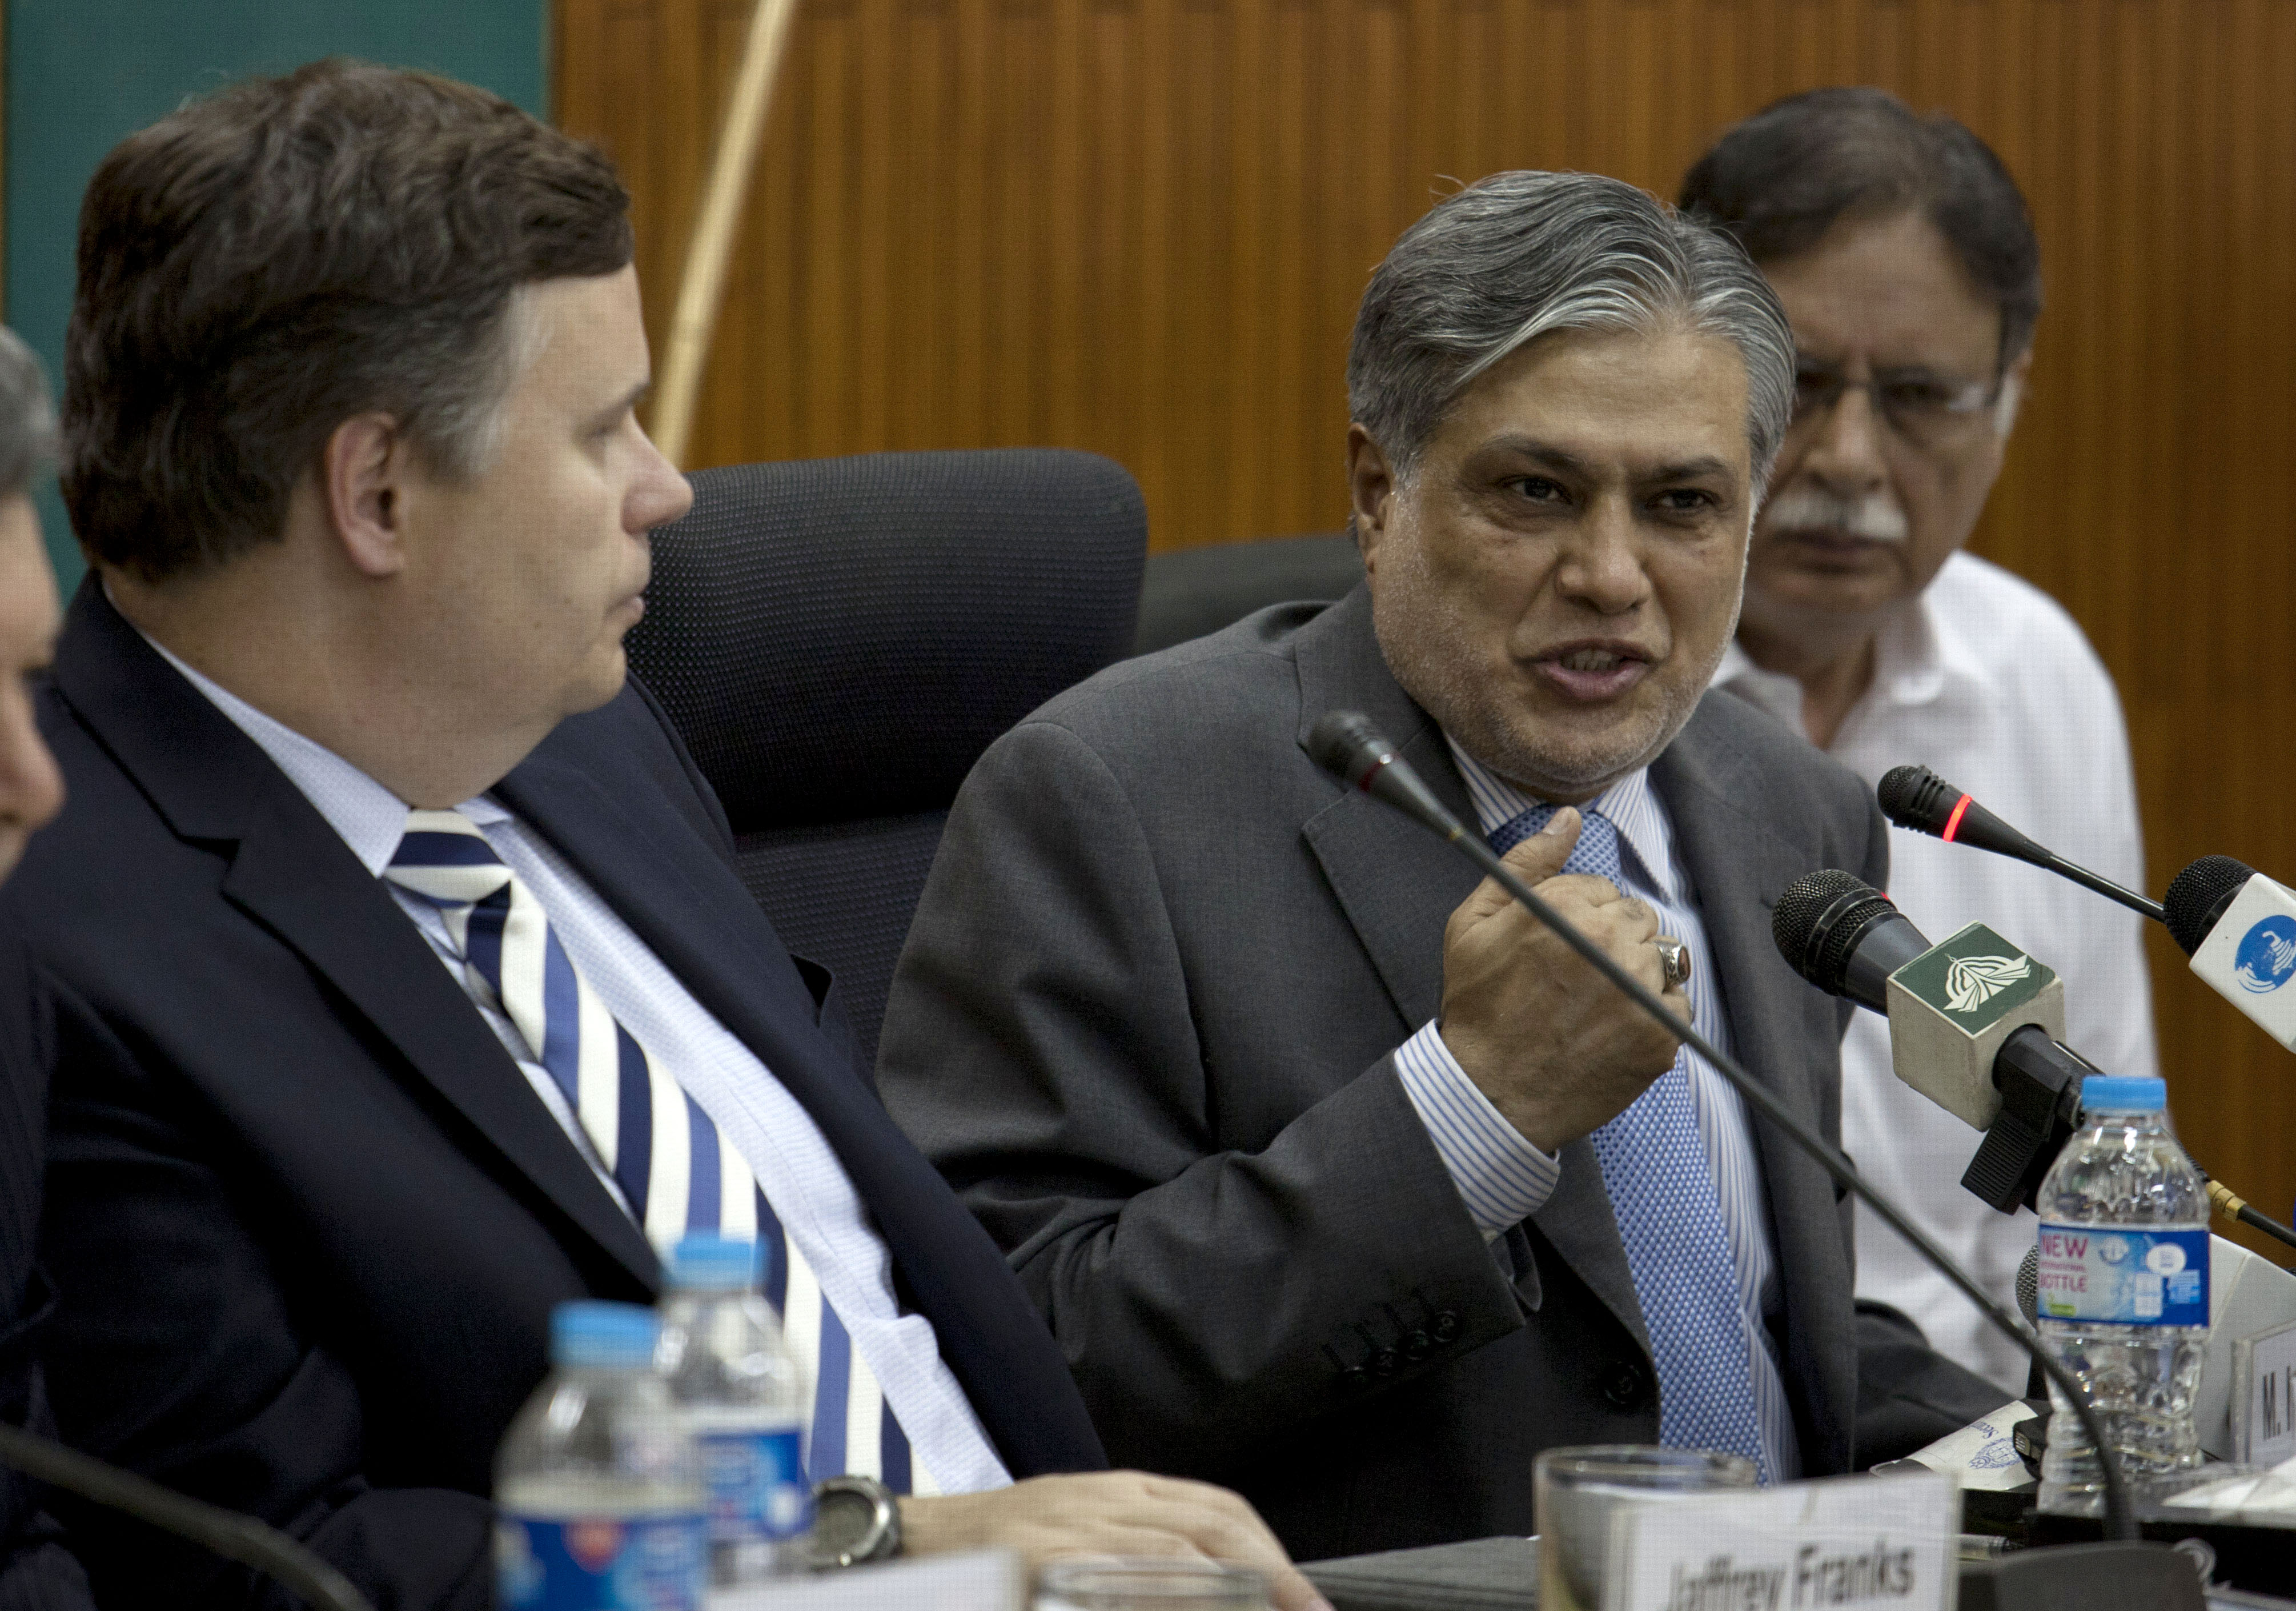 FILE - Then-Pakistani Finance Minister Muhammad Ishaq Dar, center, addresses a news conference with Jeffrey Franks, left, who then was the IMF mission chief for Pakistan, at the finance ministry in Islamabad, Pakistan, July 4, 2013. At the time, Paki...